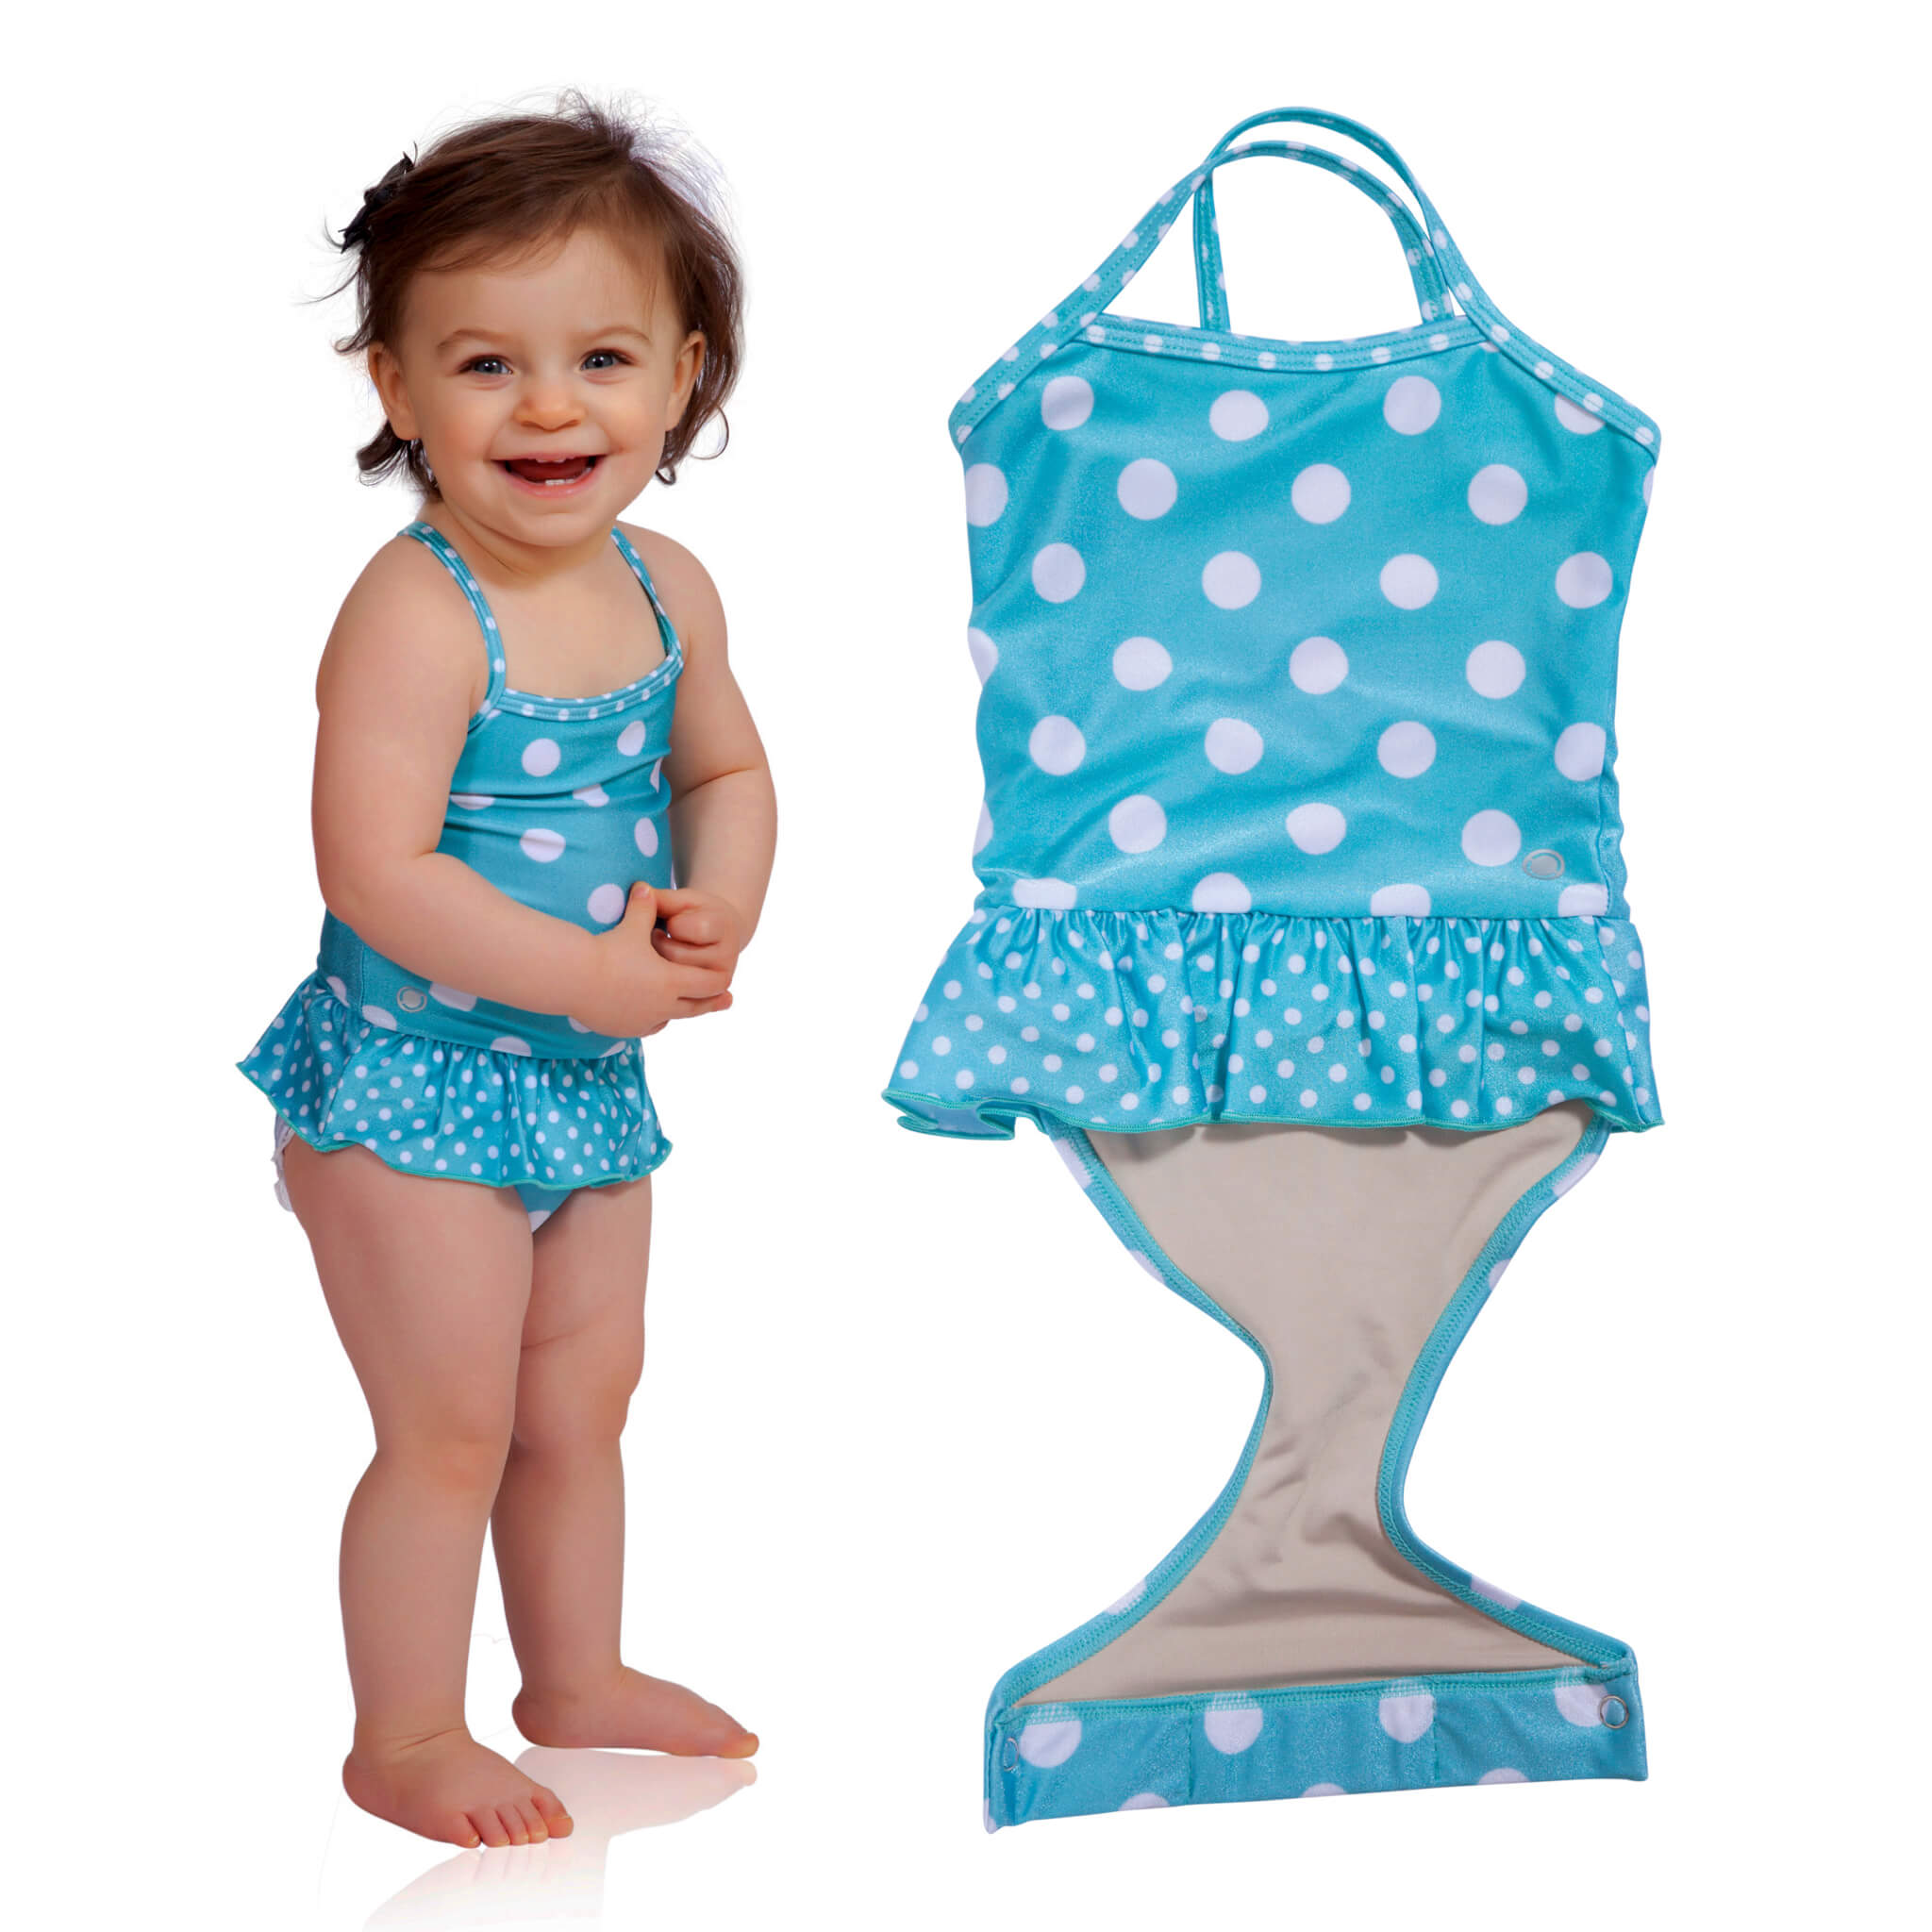 25f50ba92e ... Aqua Polka Dot toddler girl swimsuit with ruffle by FASTEN. Features  patented design that opens ...